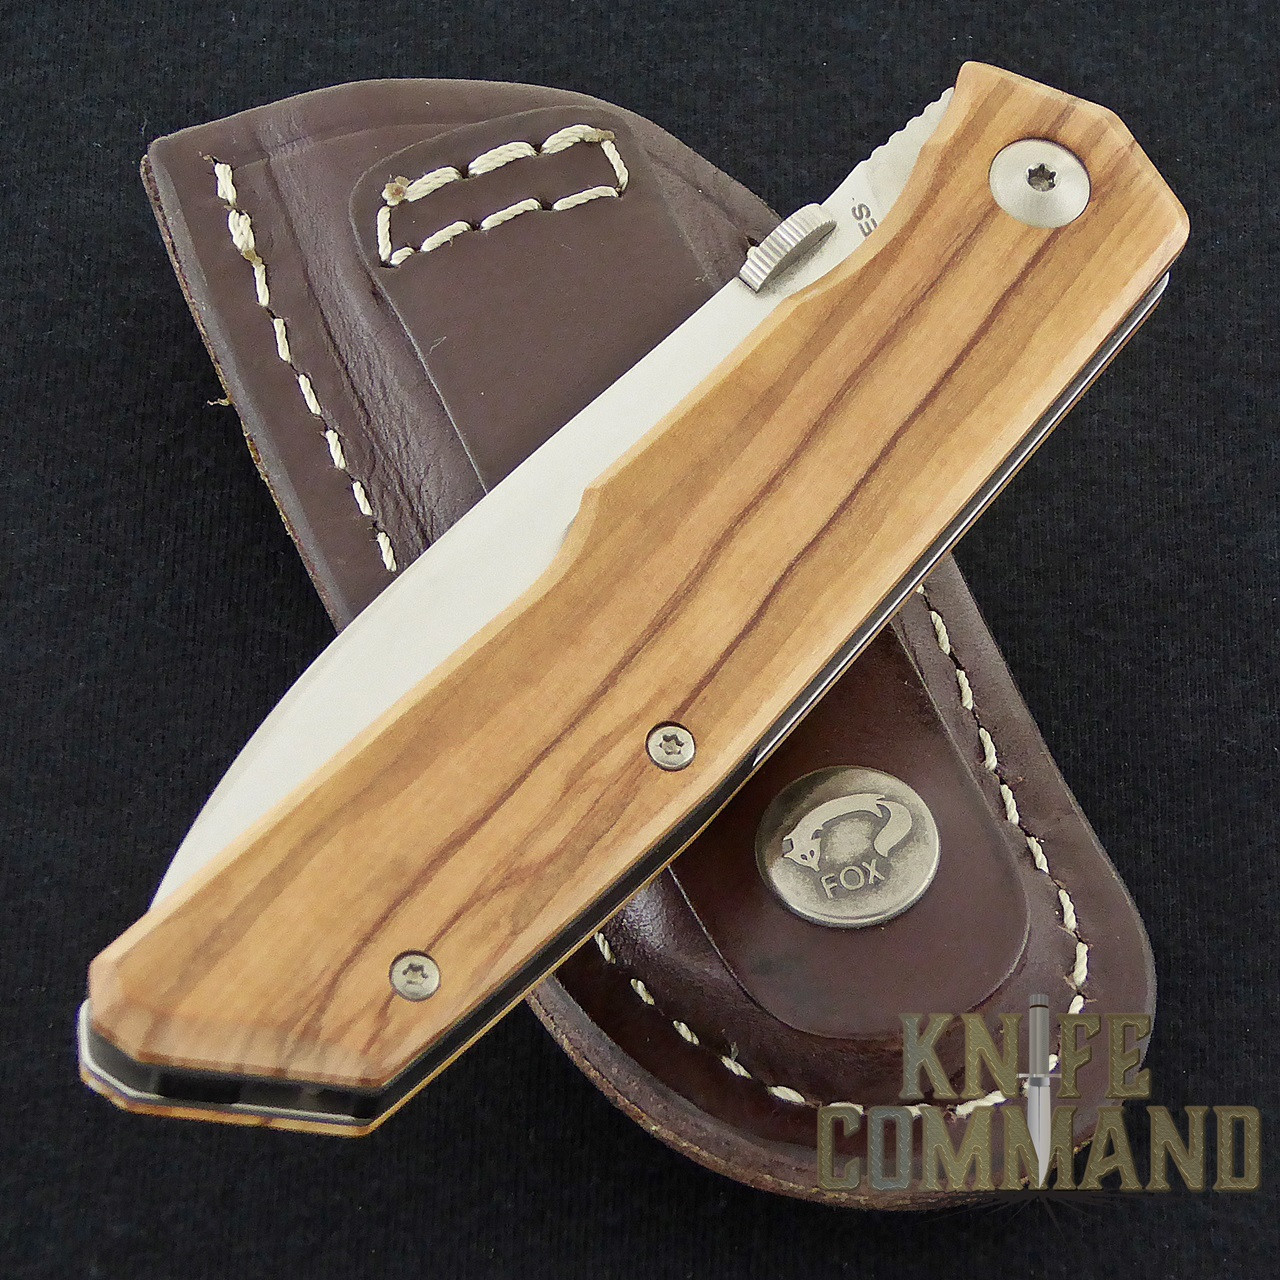 Fox Knives Bob Terzuola Olive Wood Handle Pocket Knife FX-525 OL.  Leather belt sheath.